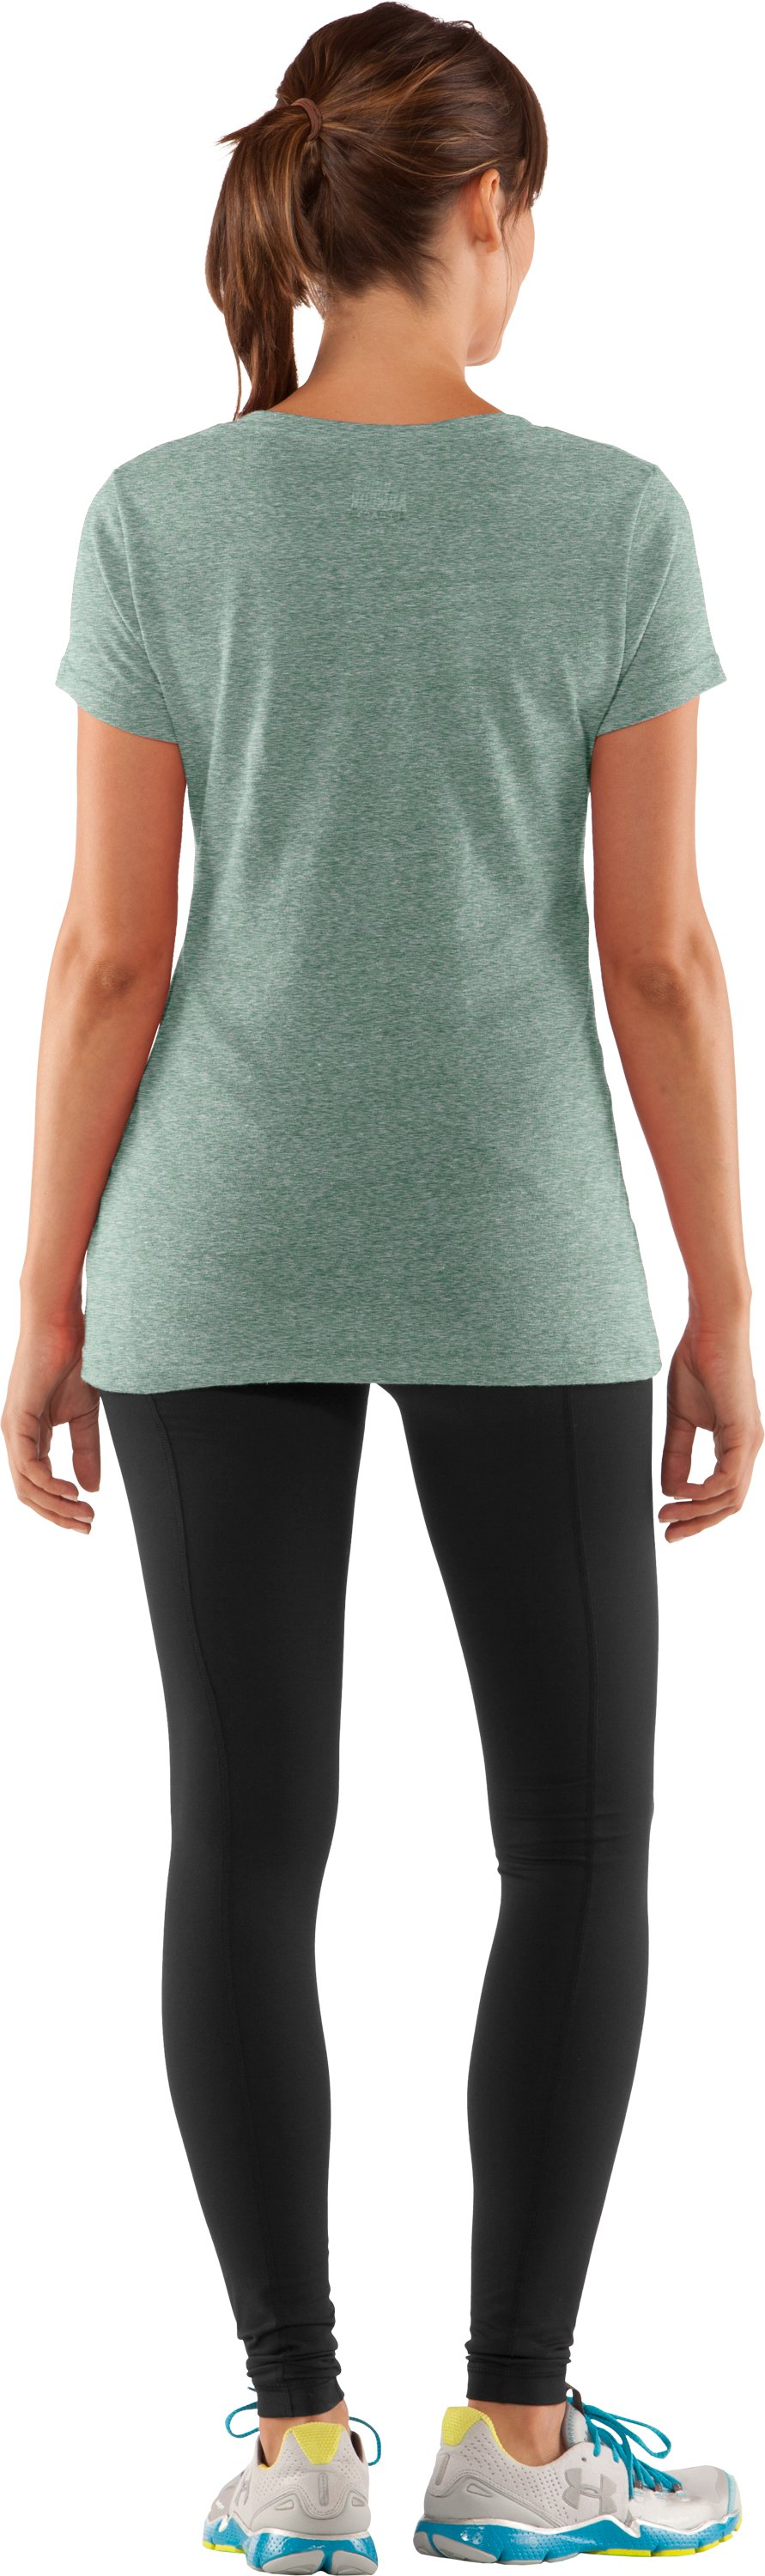 Women's Hawai'i Under Armour® Legacy T-Shirt, Forest Green, Back